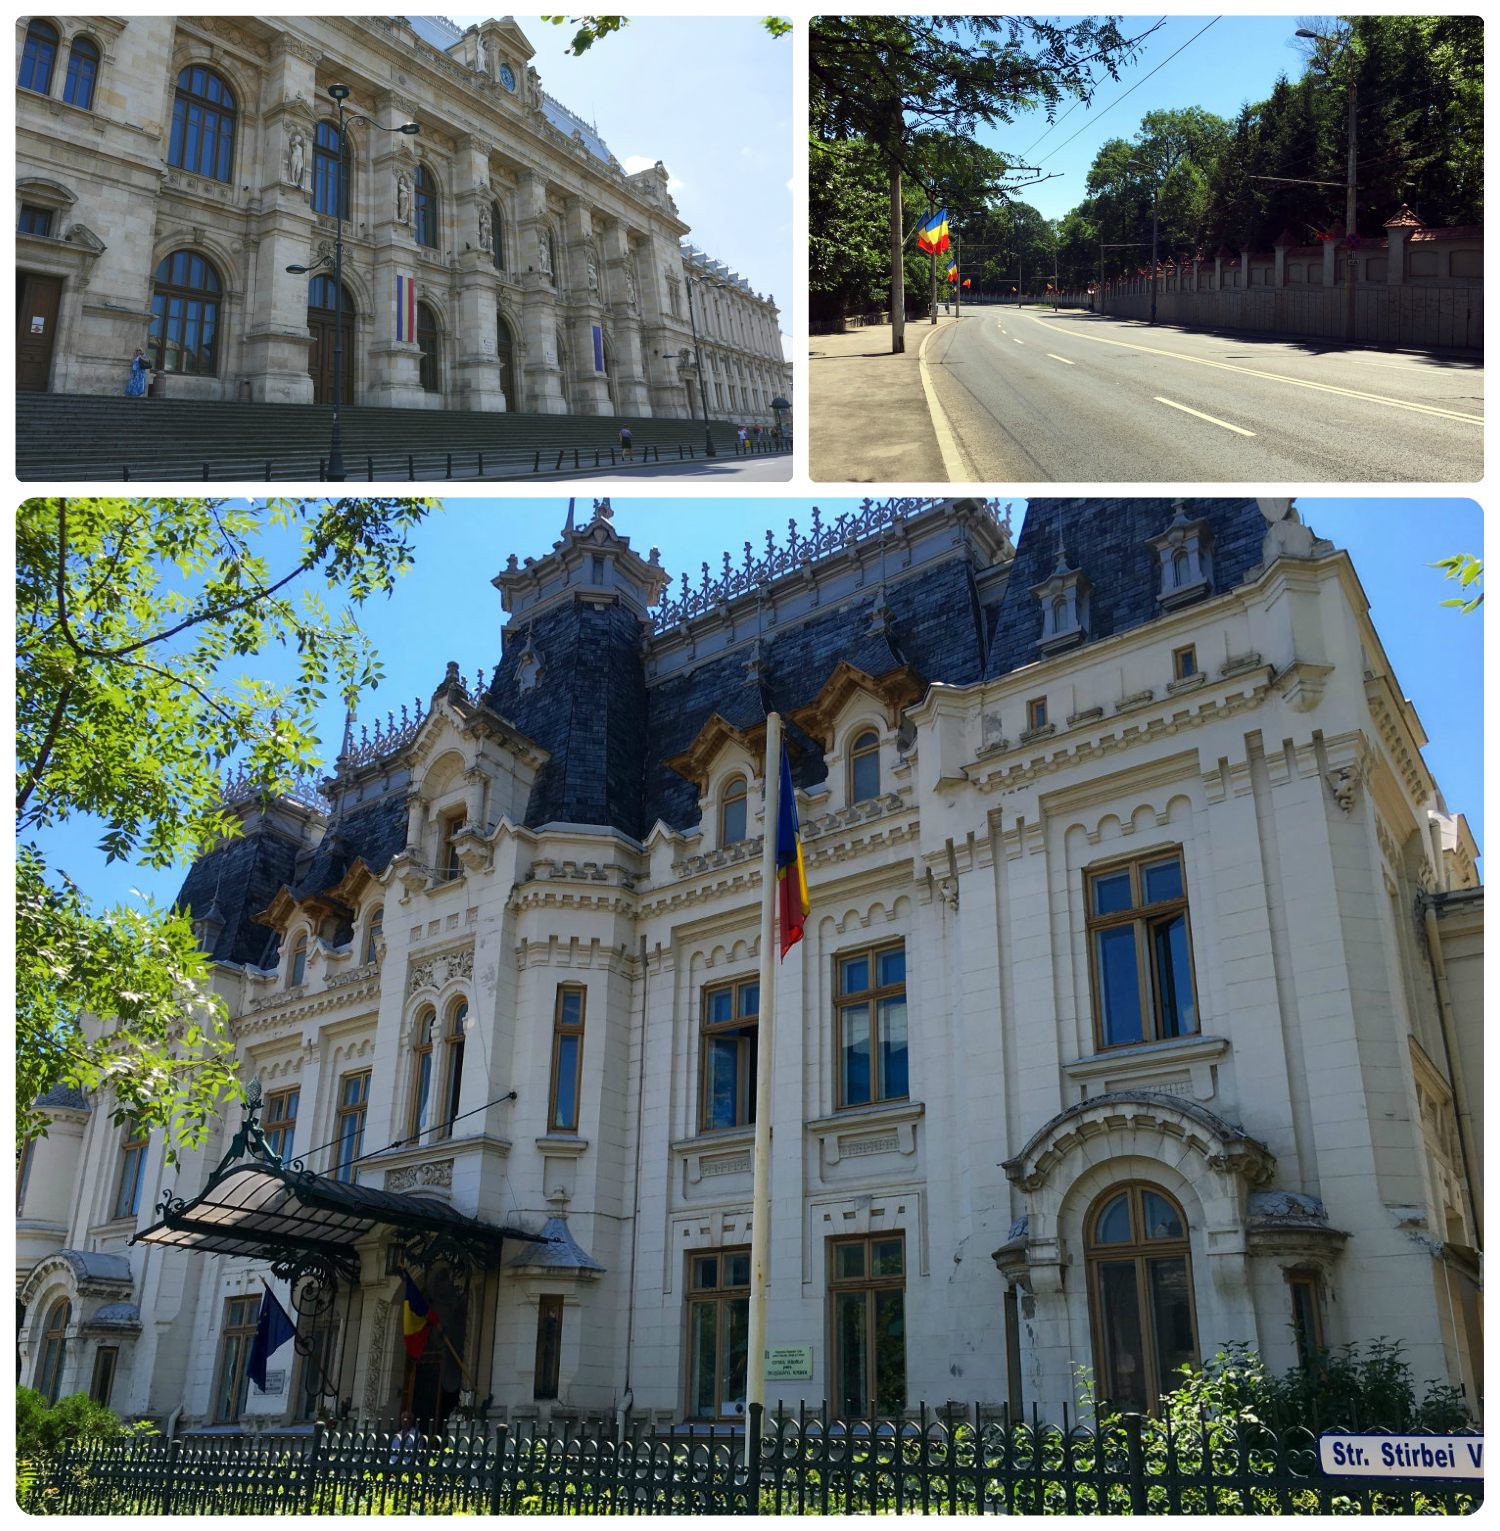 Clockwise (from the top): The exterior of the Palace of Justice, the street in front of Cotroceni Palace is lined with Romanian flags, the front of Cretulescu Palace.